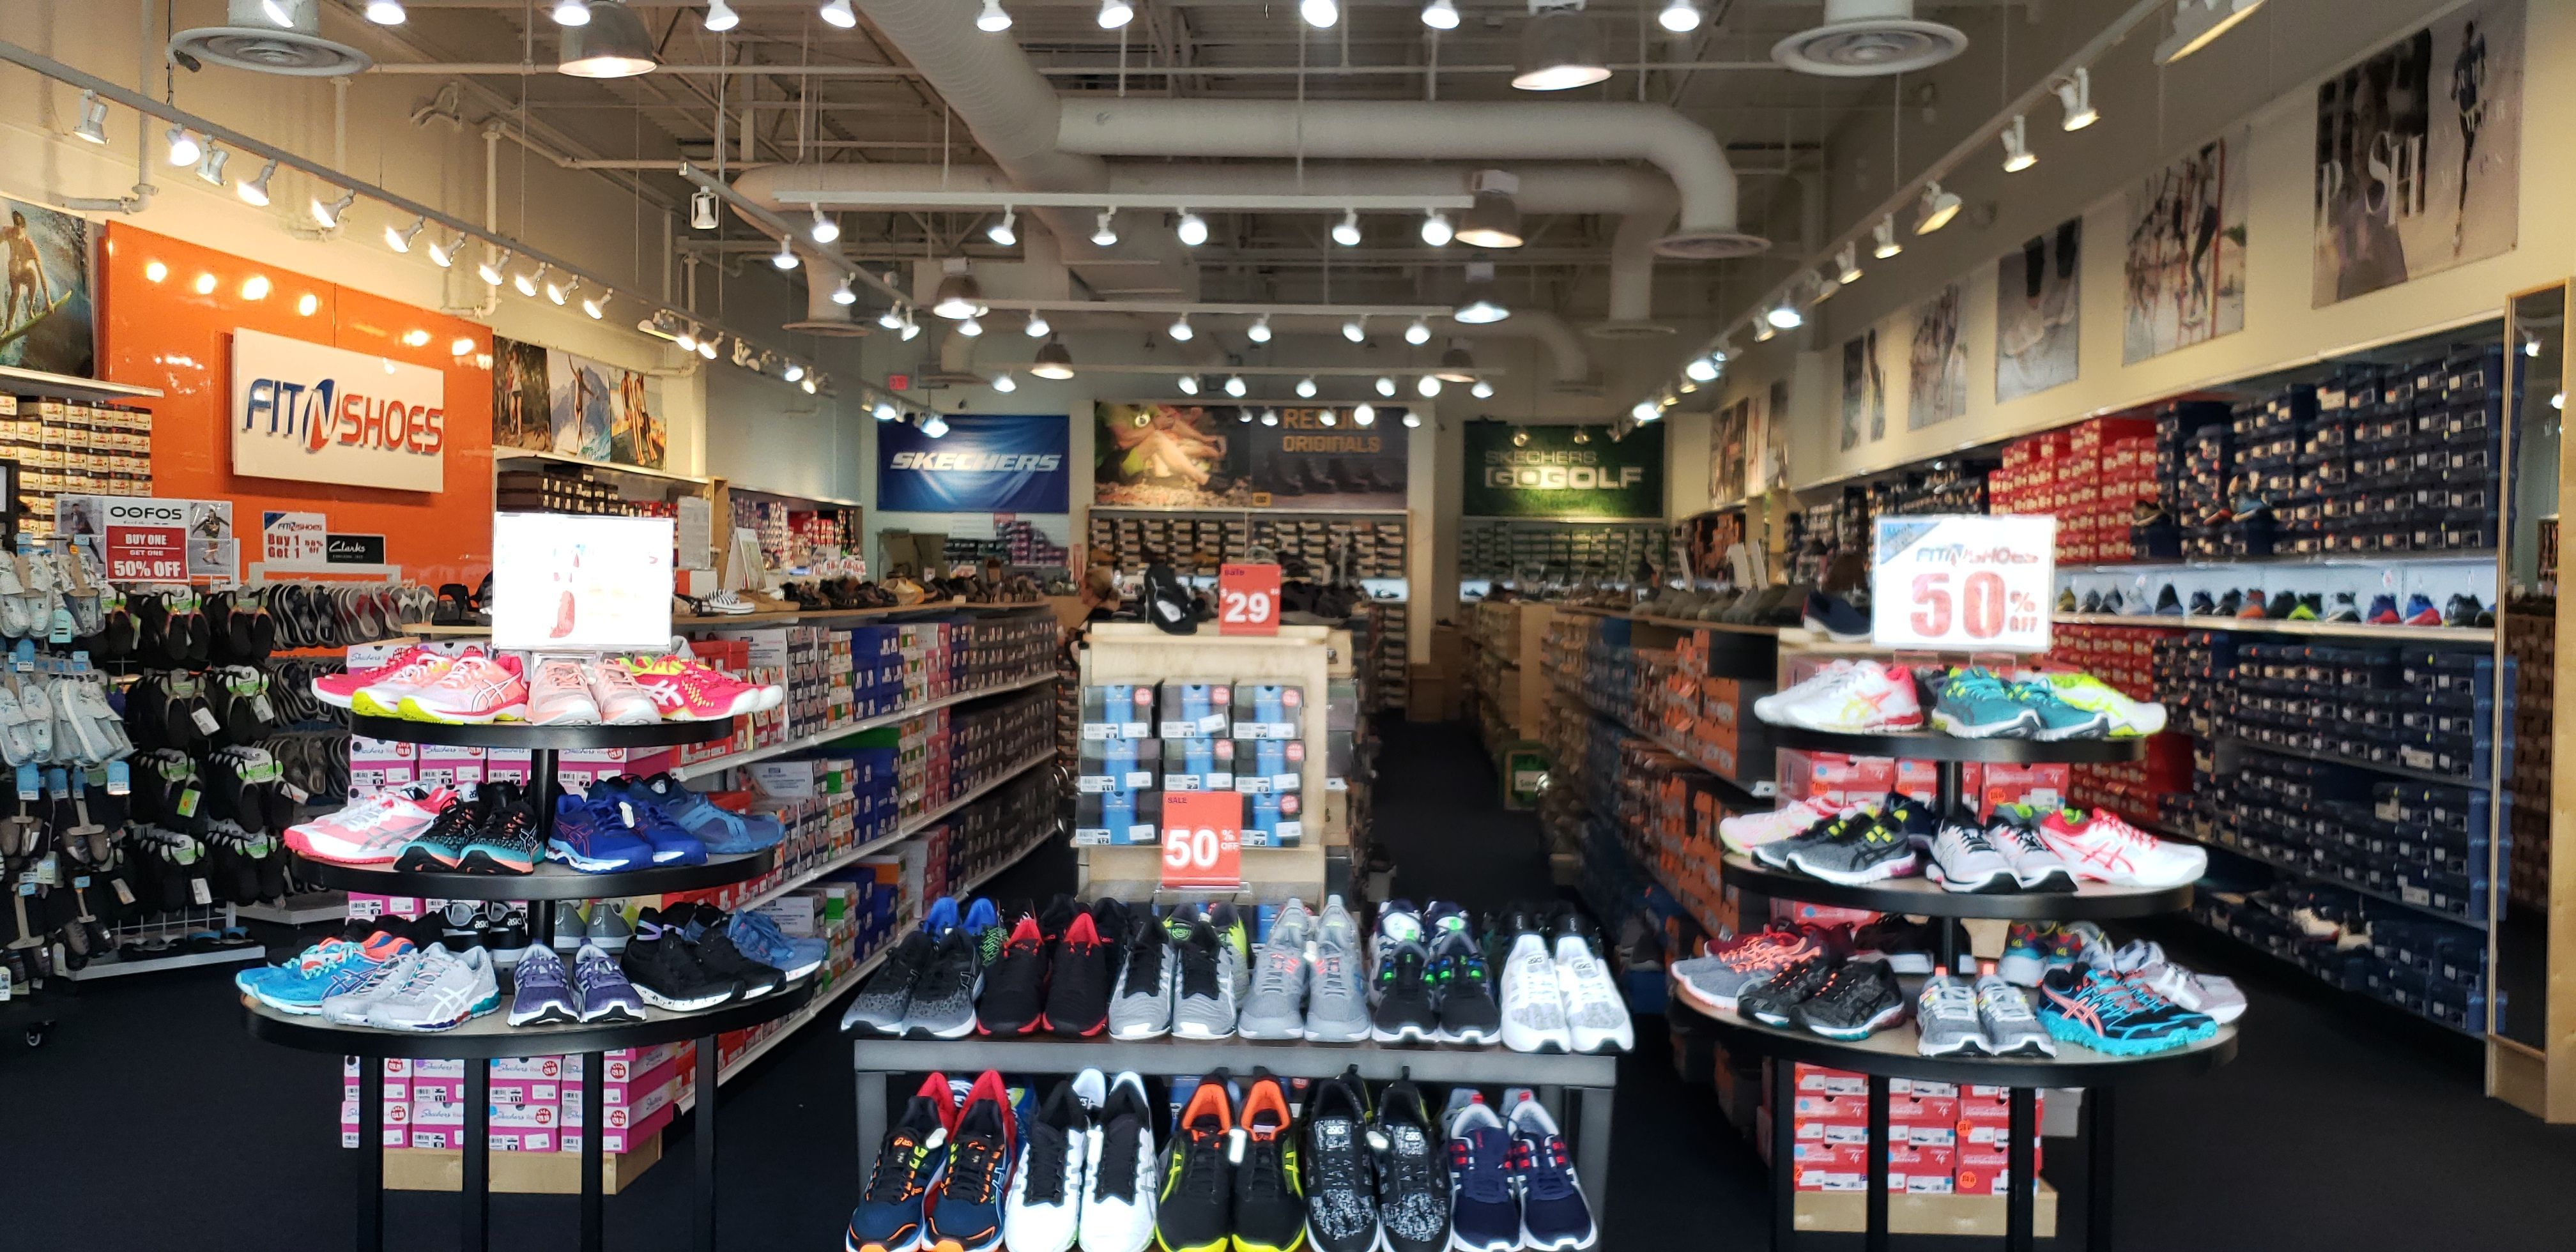 Fit N Shoes up to 50 off entire store! Vionics buy one